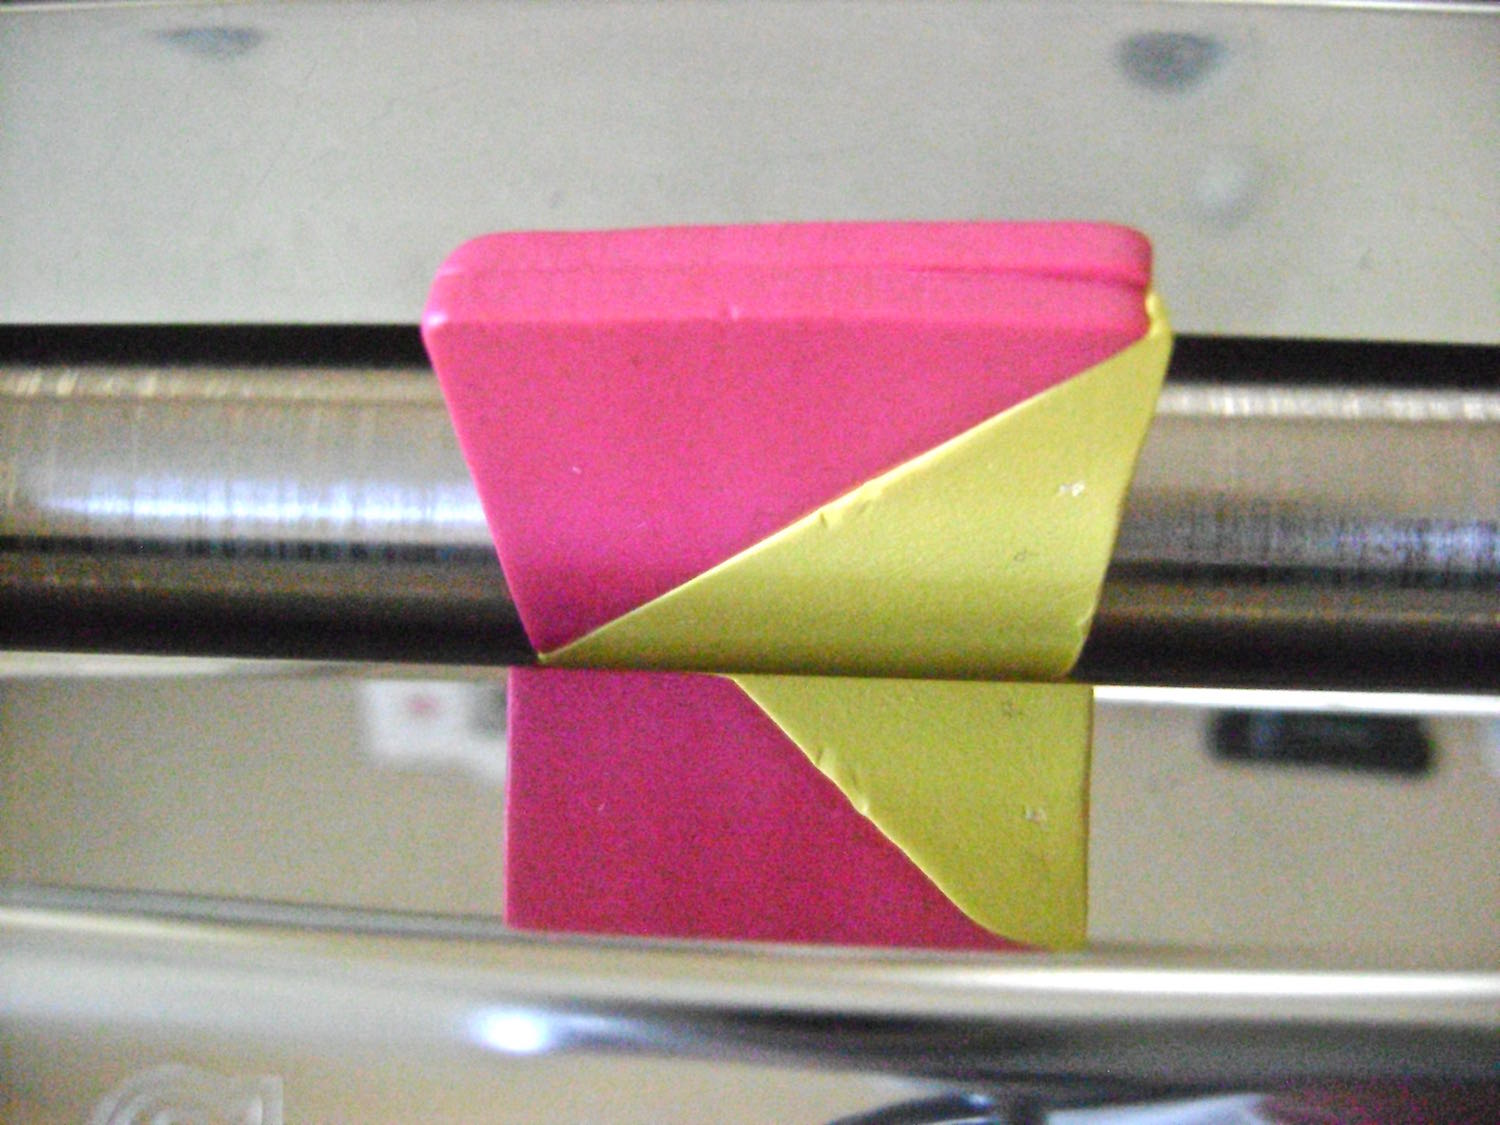 step 3 - Feed the square into the machine on the #1 setting. Fold the piece with the top and bottom edges aligned. Feed it through the machine with the folded edge first. Continue folding and feeding the piece in the same direction 10 times or more until the colors smoothly blend.